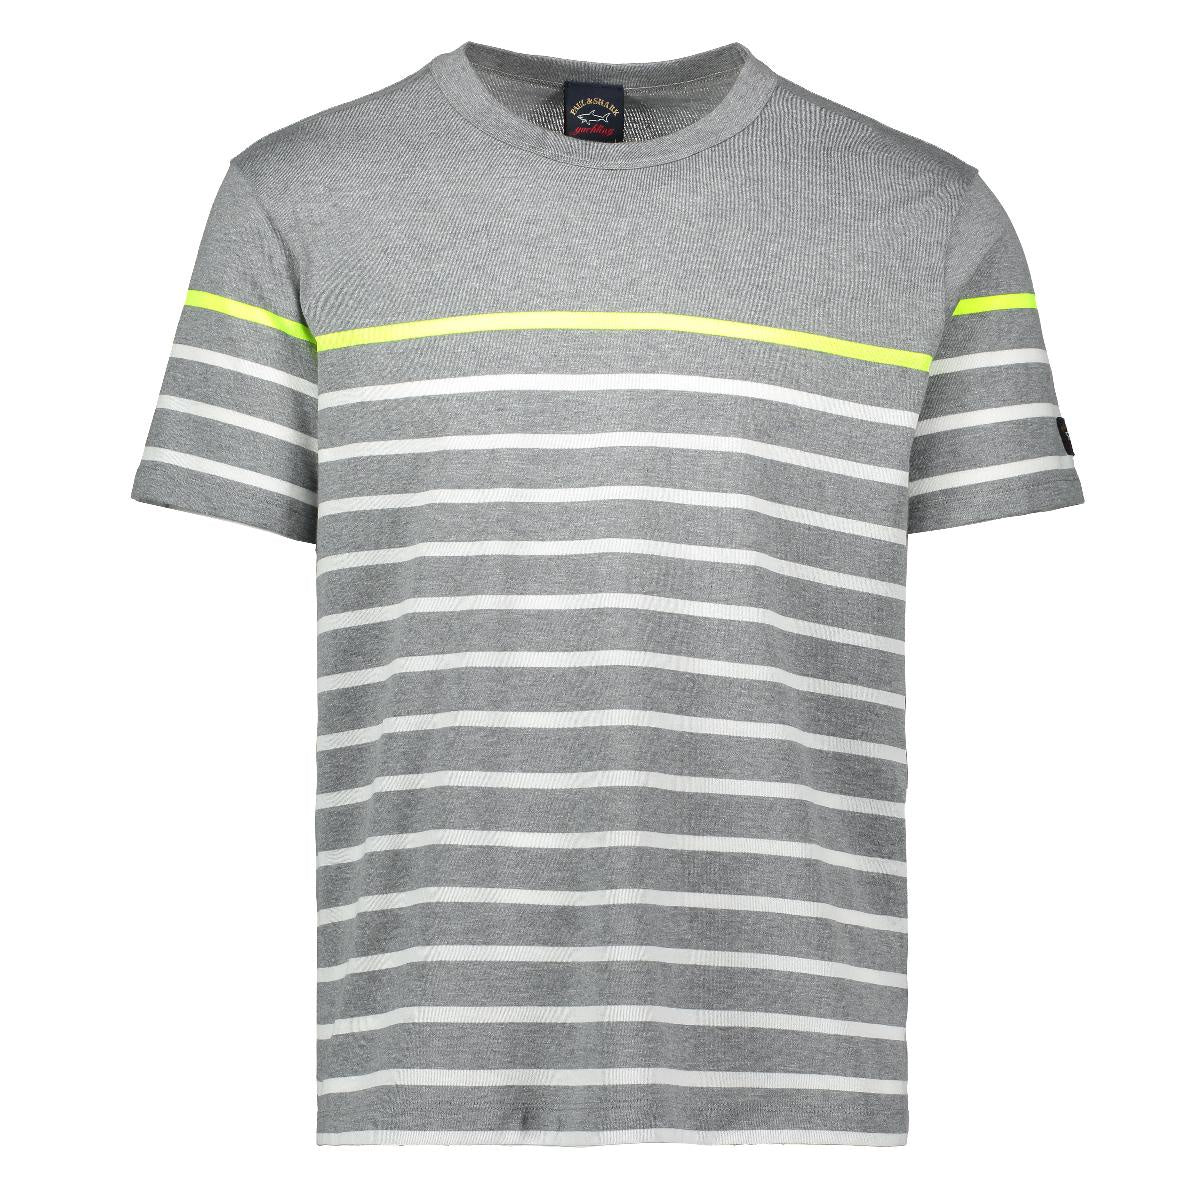 Grey Striped Tee Shirt